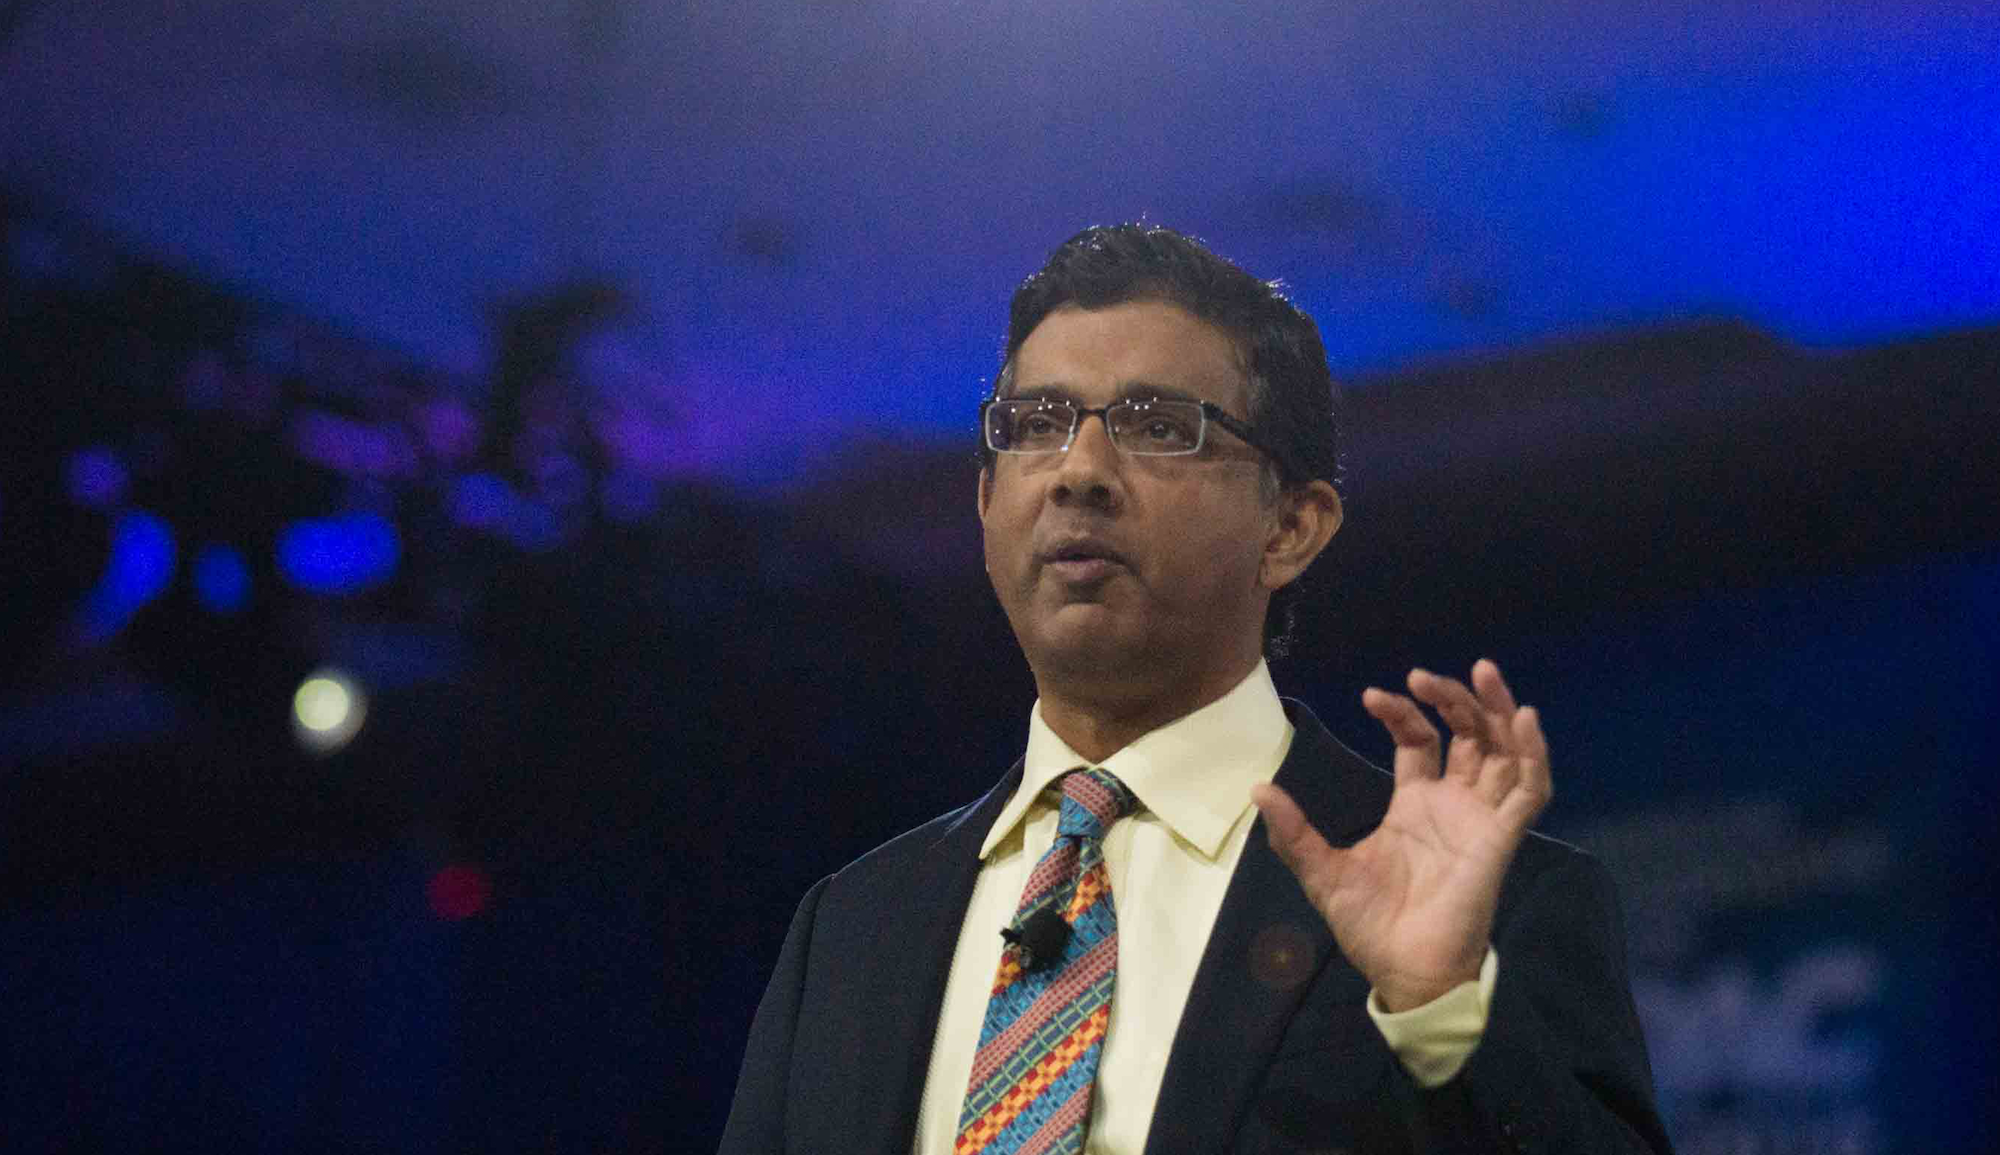 Liberals See Bad Motives, Obstruction in D'Souza Pardon